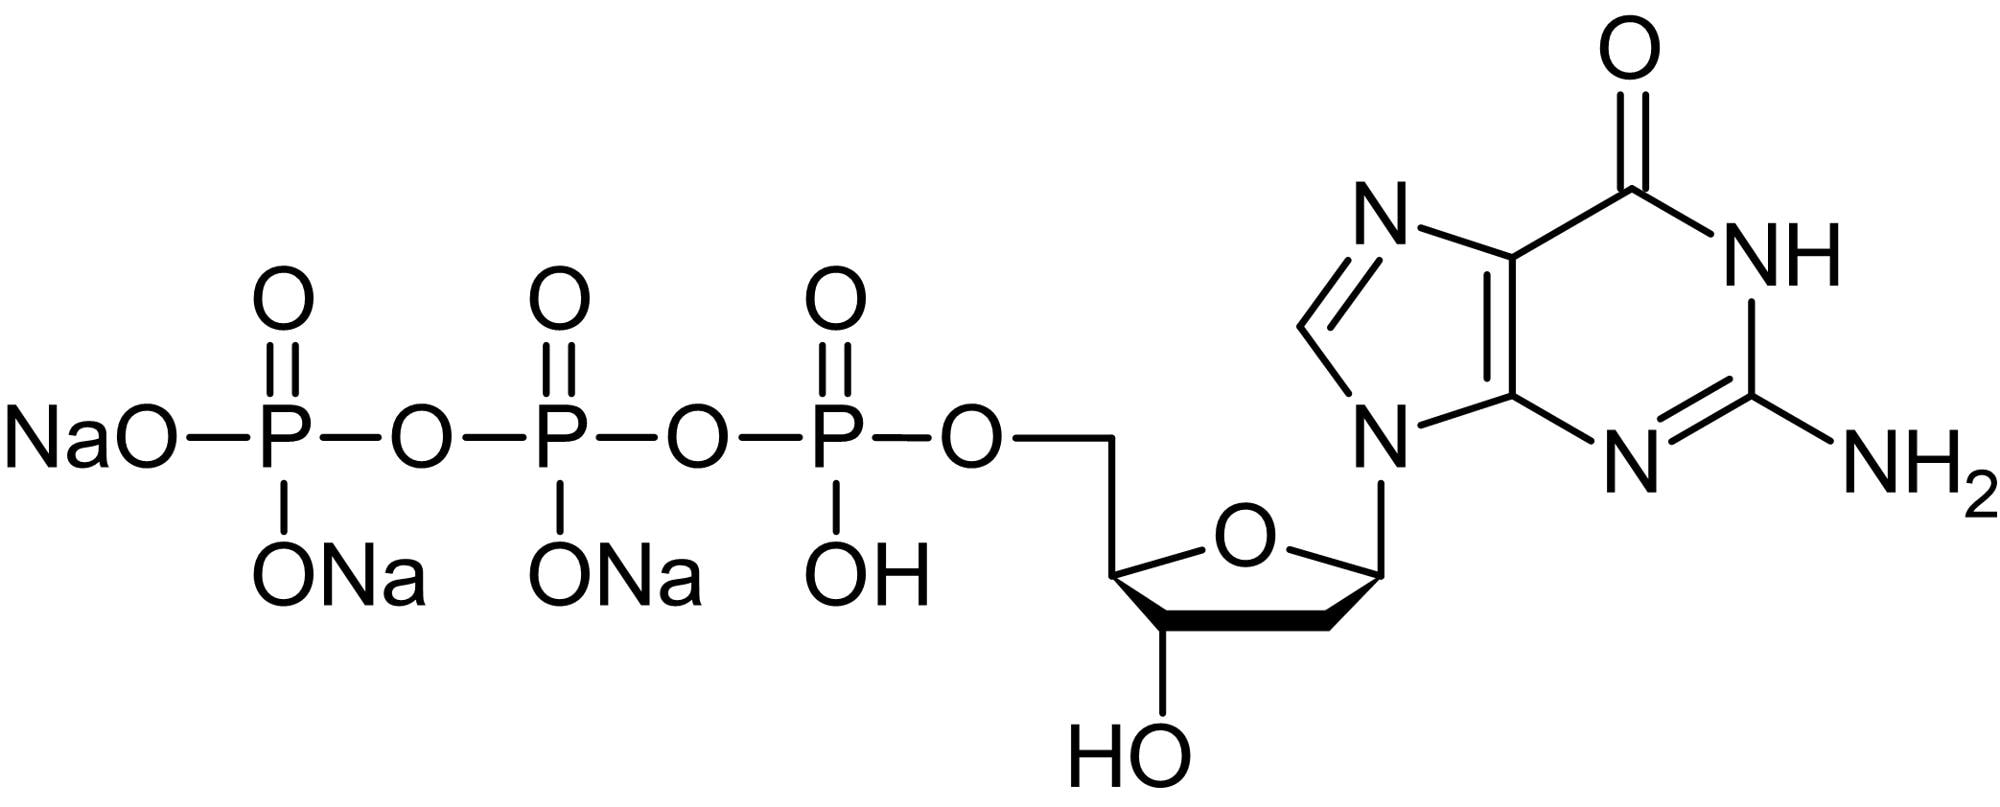 Chemical Structure - 2'-Deoxyguanosine 5'-triphosphate [dGTP] trisodium salt (aqueous), purine nucleoside triphosphate (ab146559)